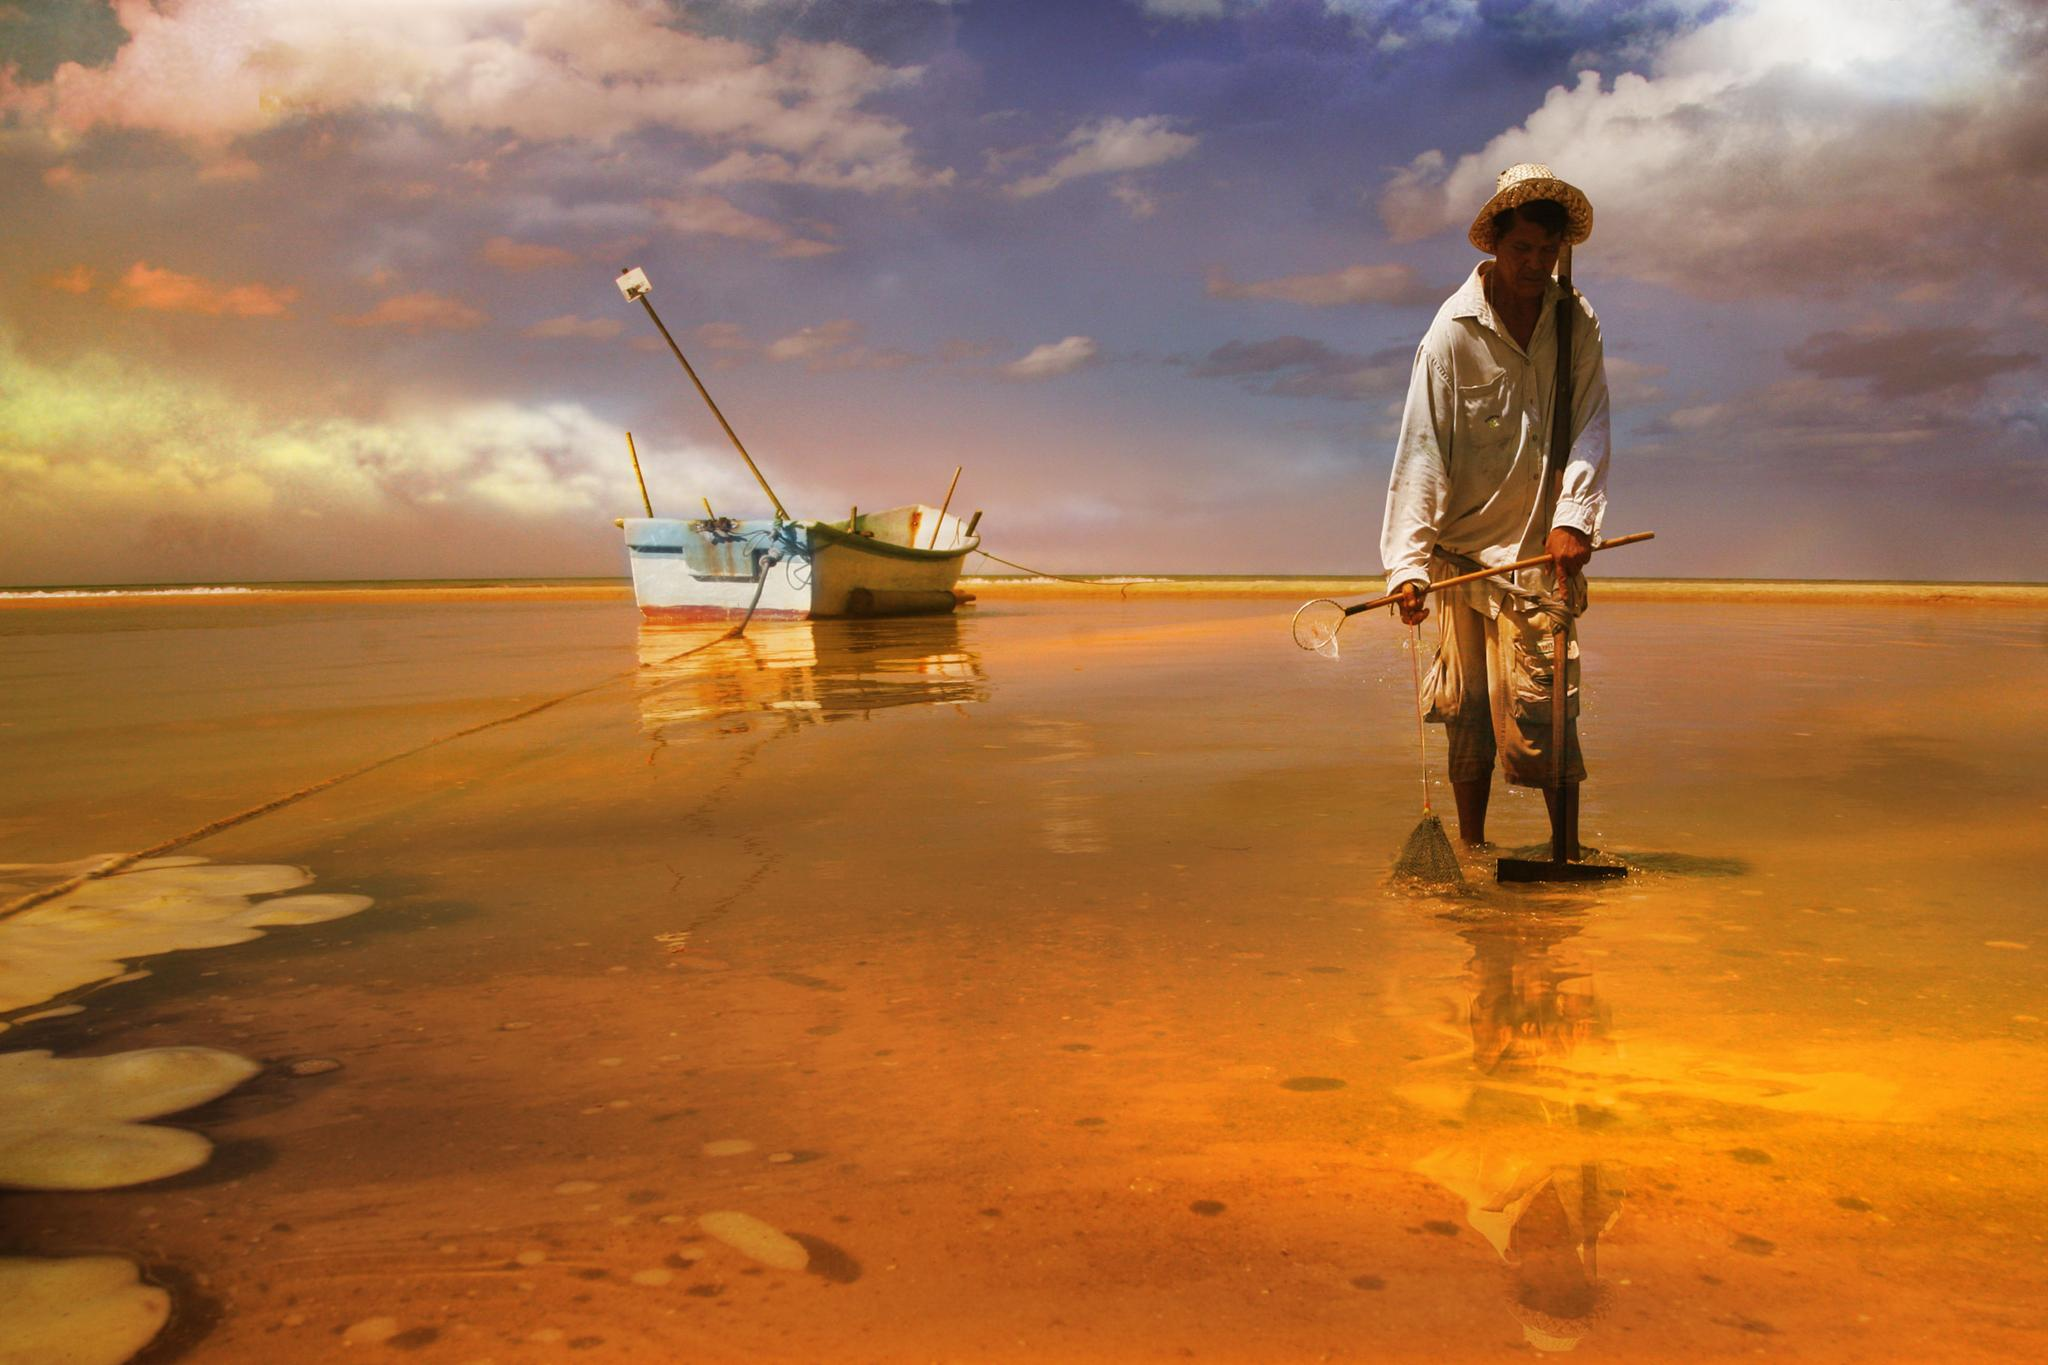 fisherman of shells by Giuseppe Castro